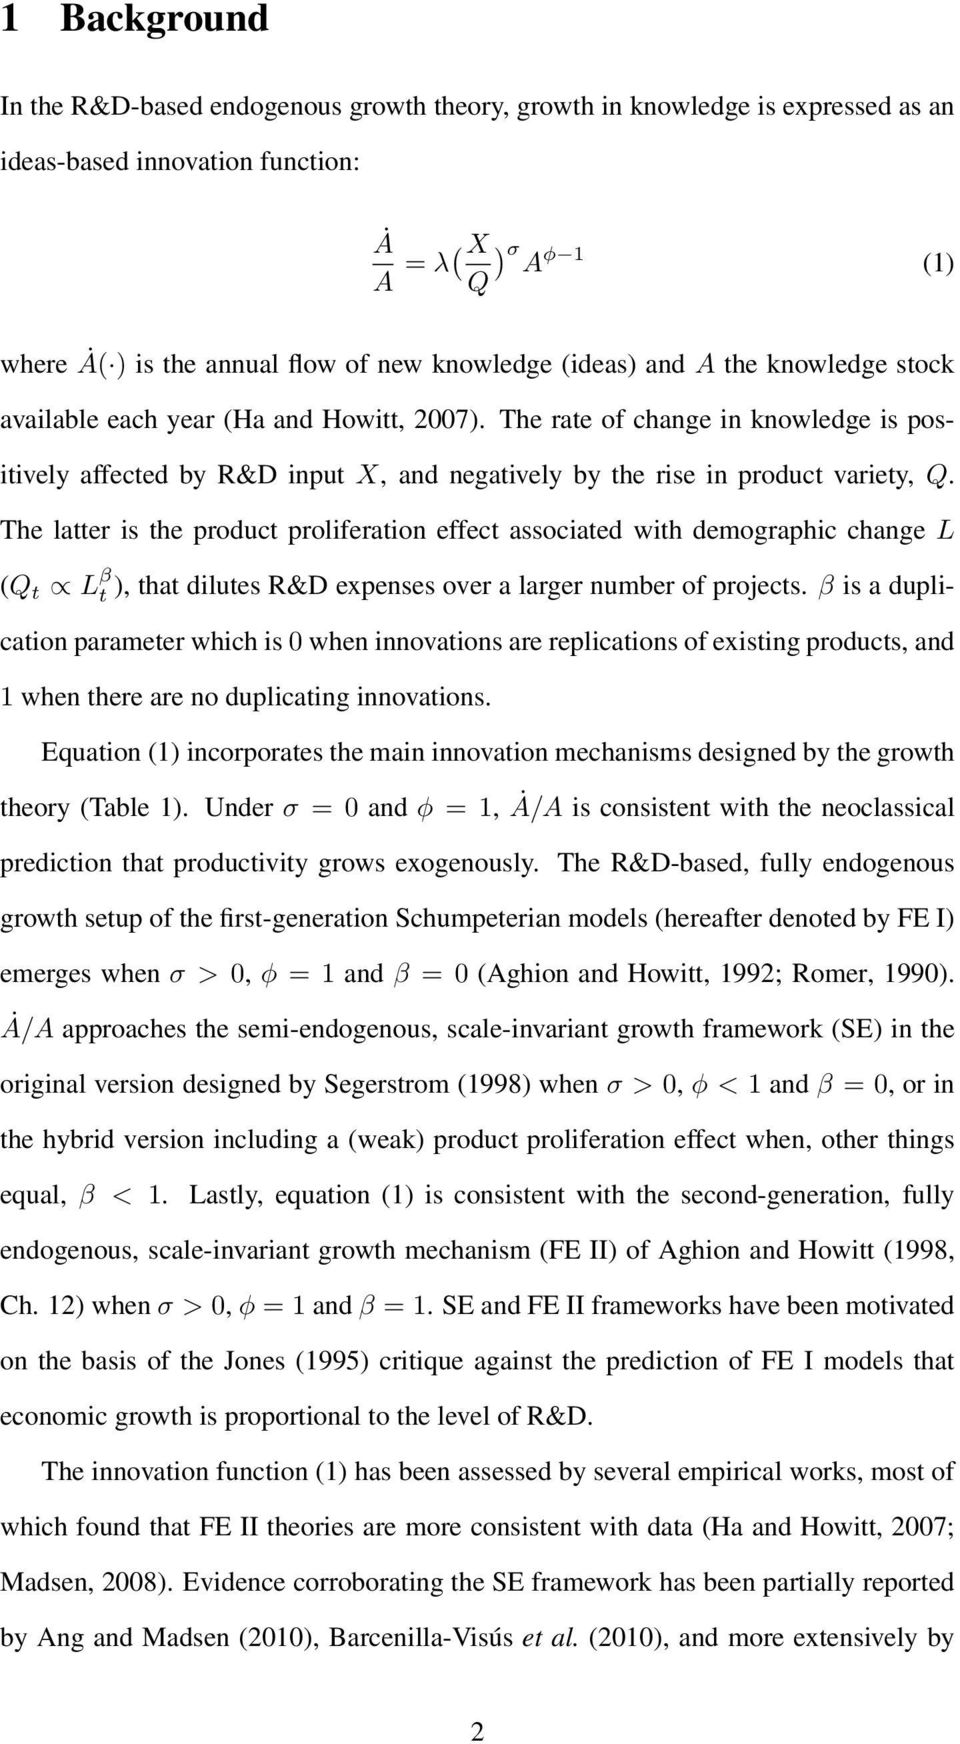 The rate of change in knowledge is positively affected by R&D input X, and negatively by the rise in product variety, Q.